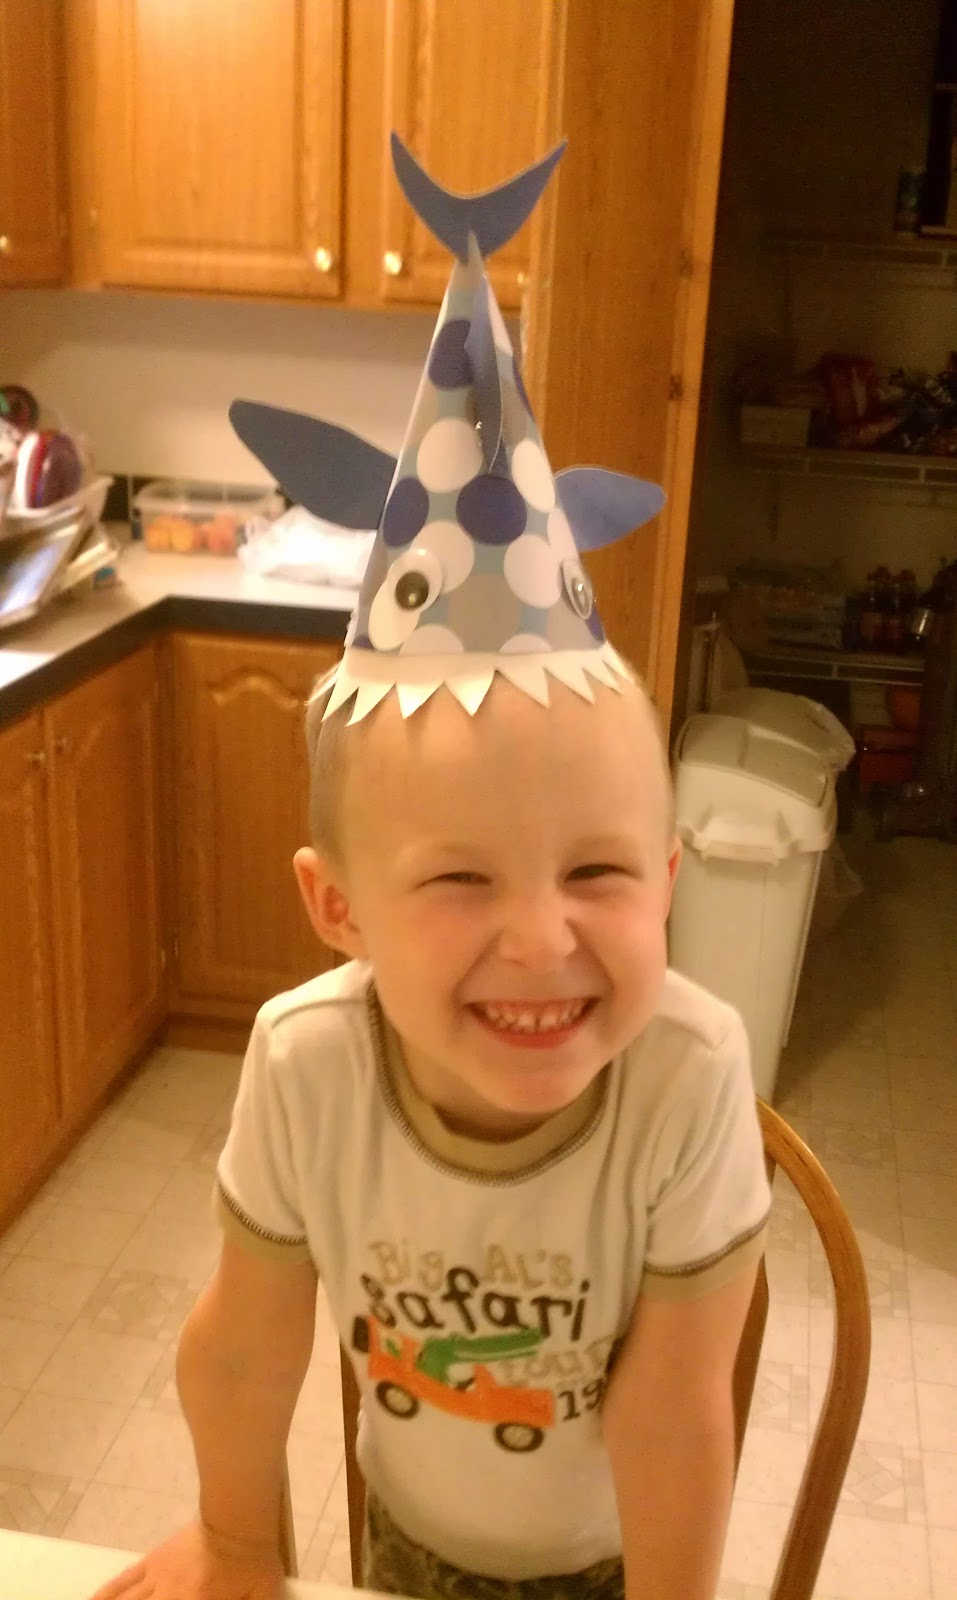 Easy Crazy Hat Day Ideas Homemade shark party hats!